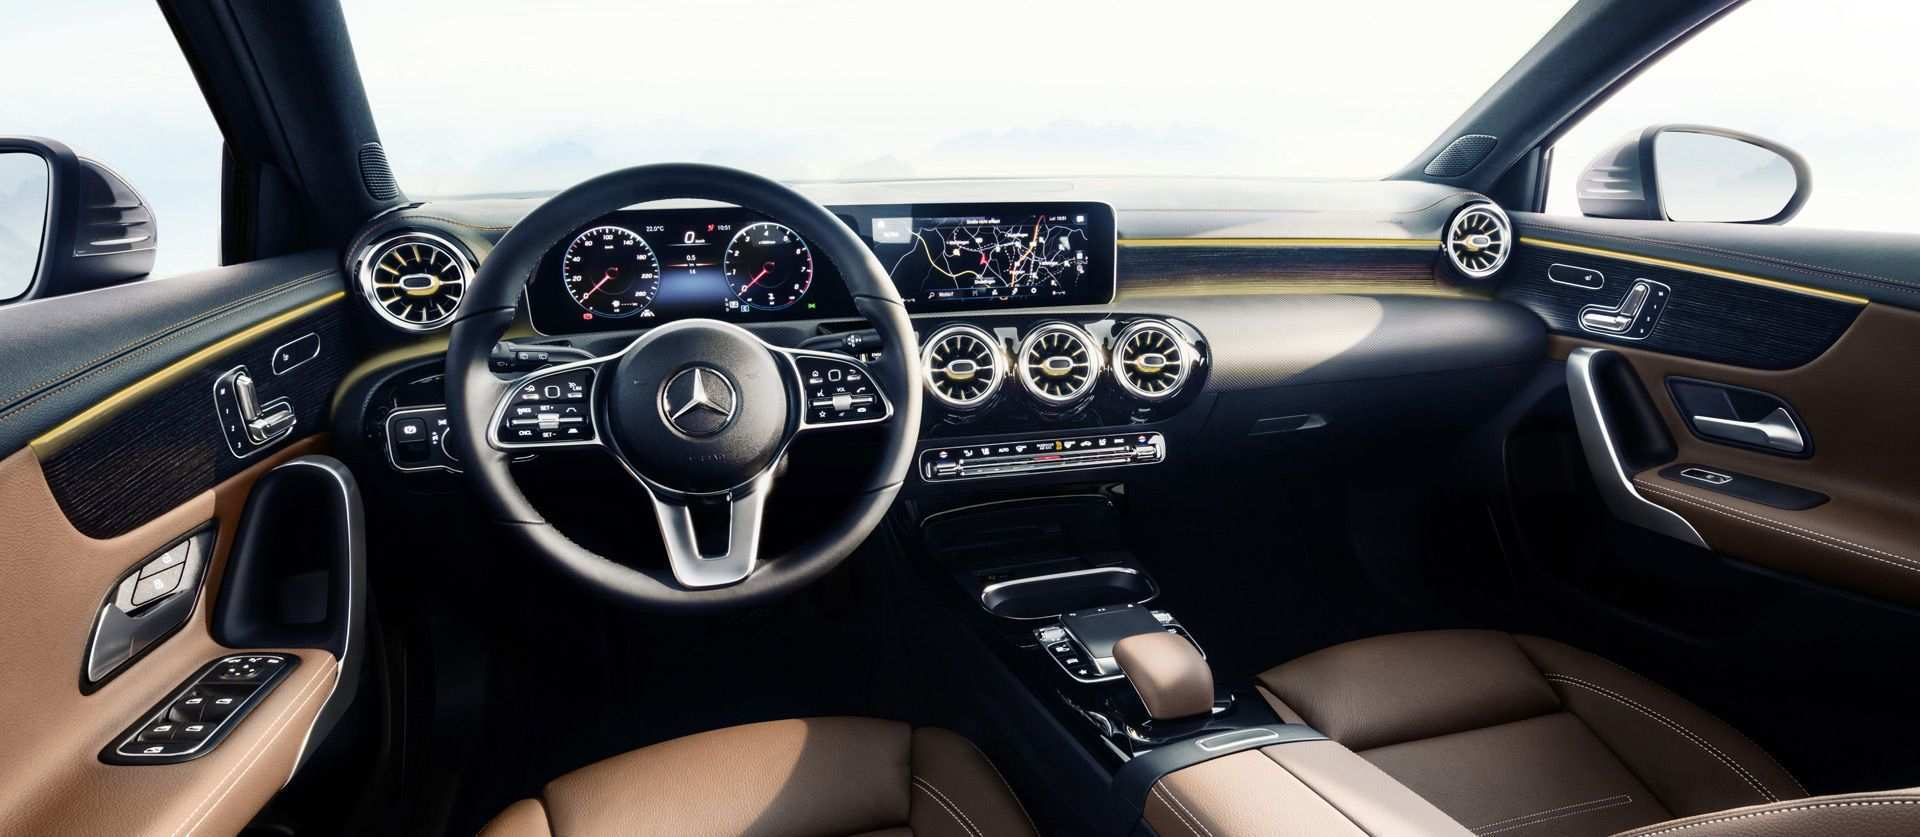 21 Concept of Gla Mercedes 2020 Configurations by Gla Mercedes 2020